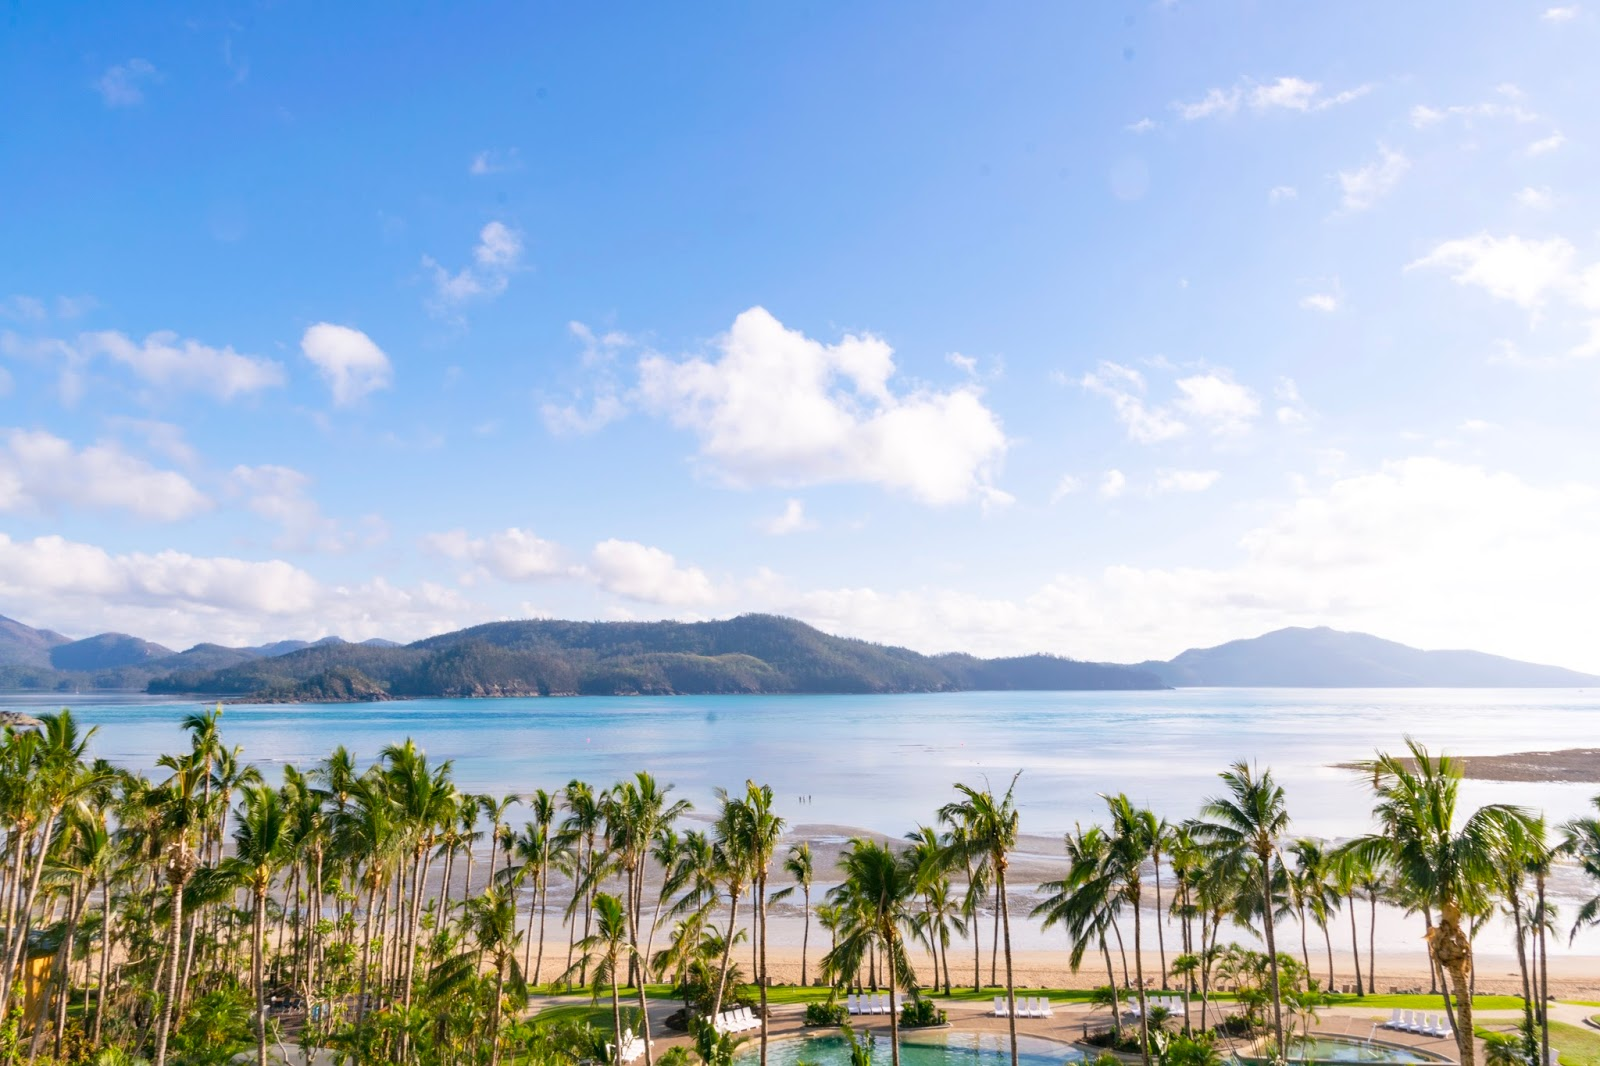 Top 7 Tips For Your Visit To Hamilton Island